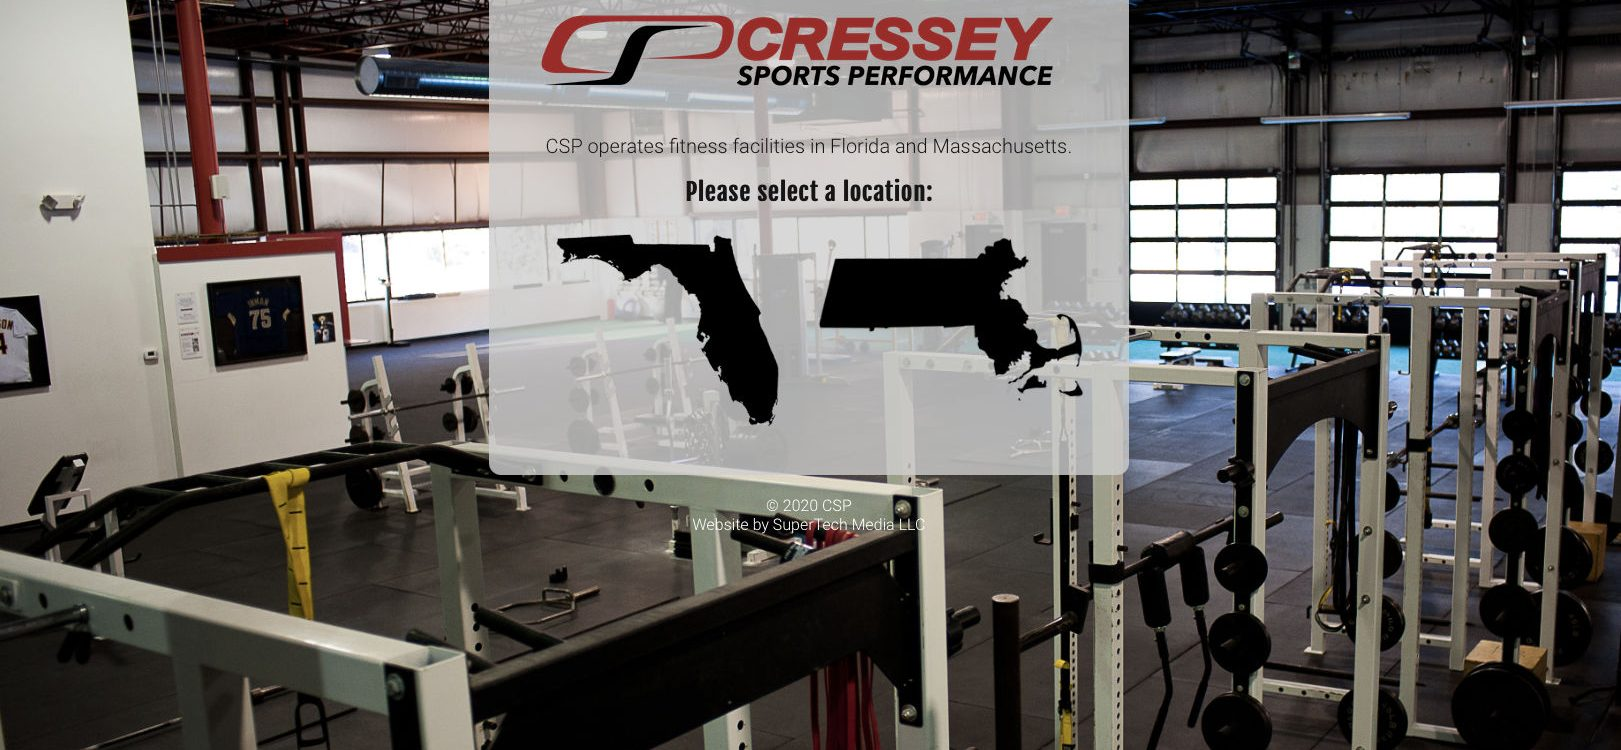 Cressey Sports Performance